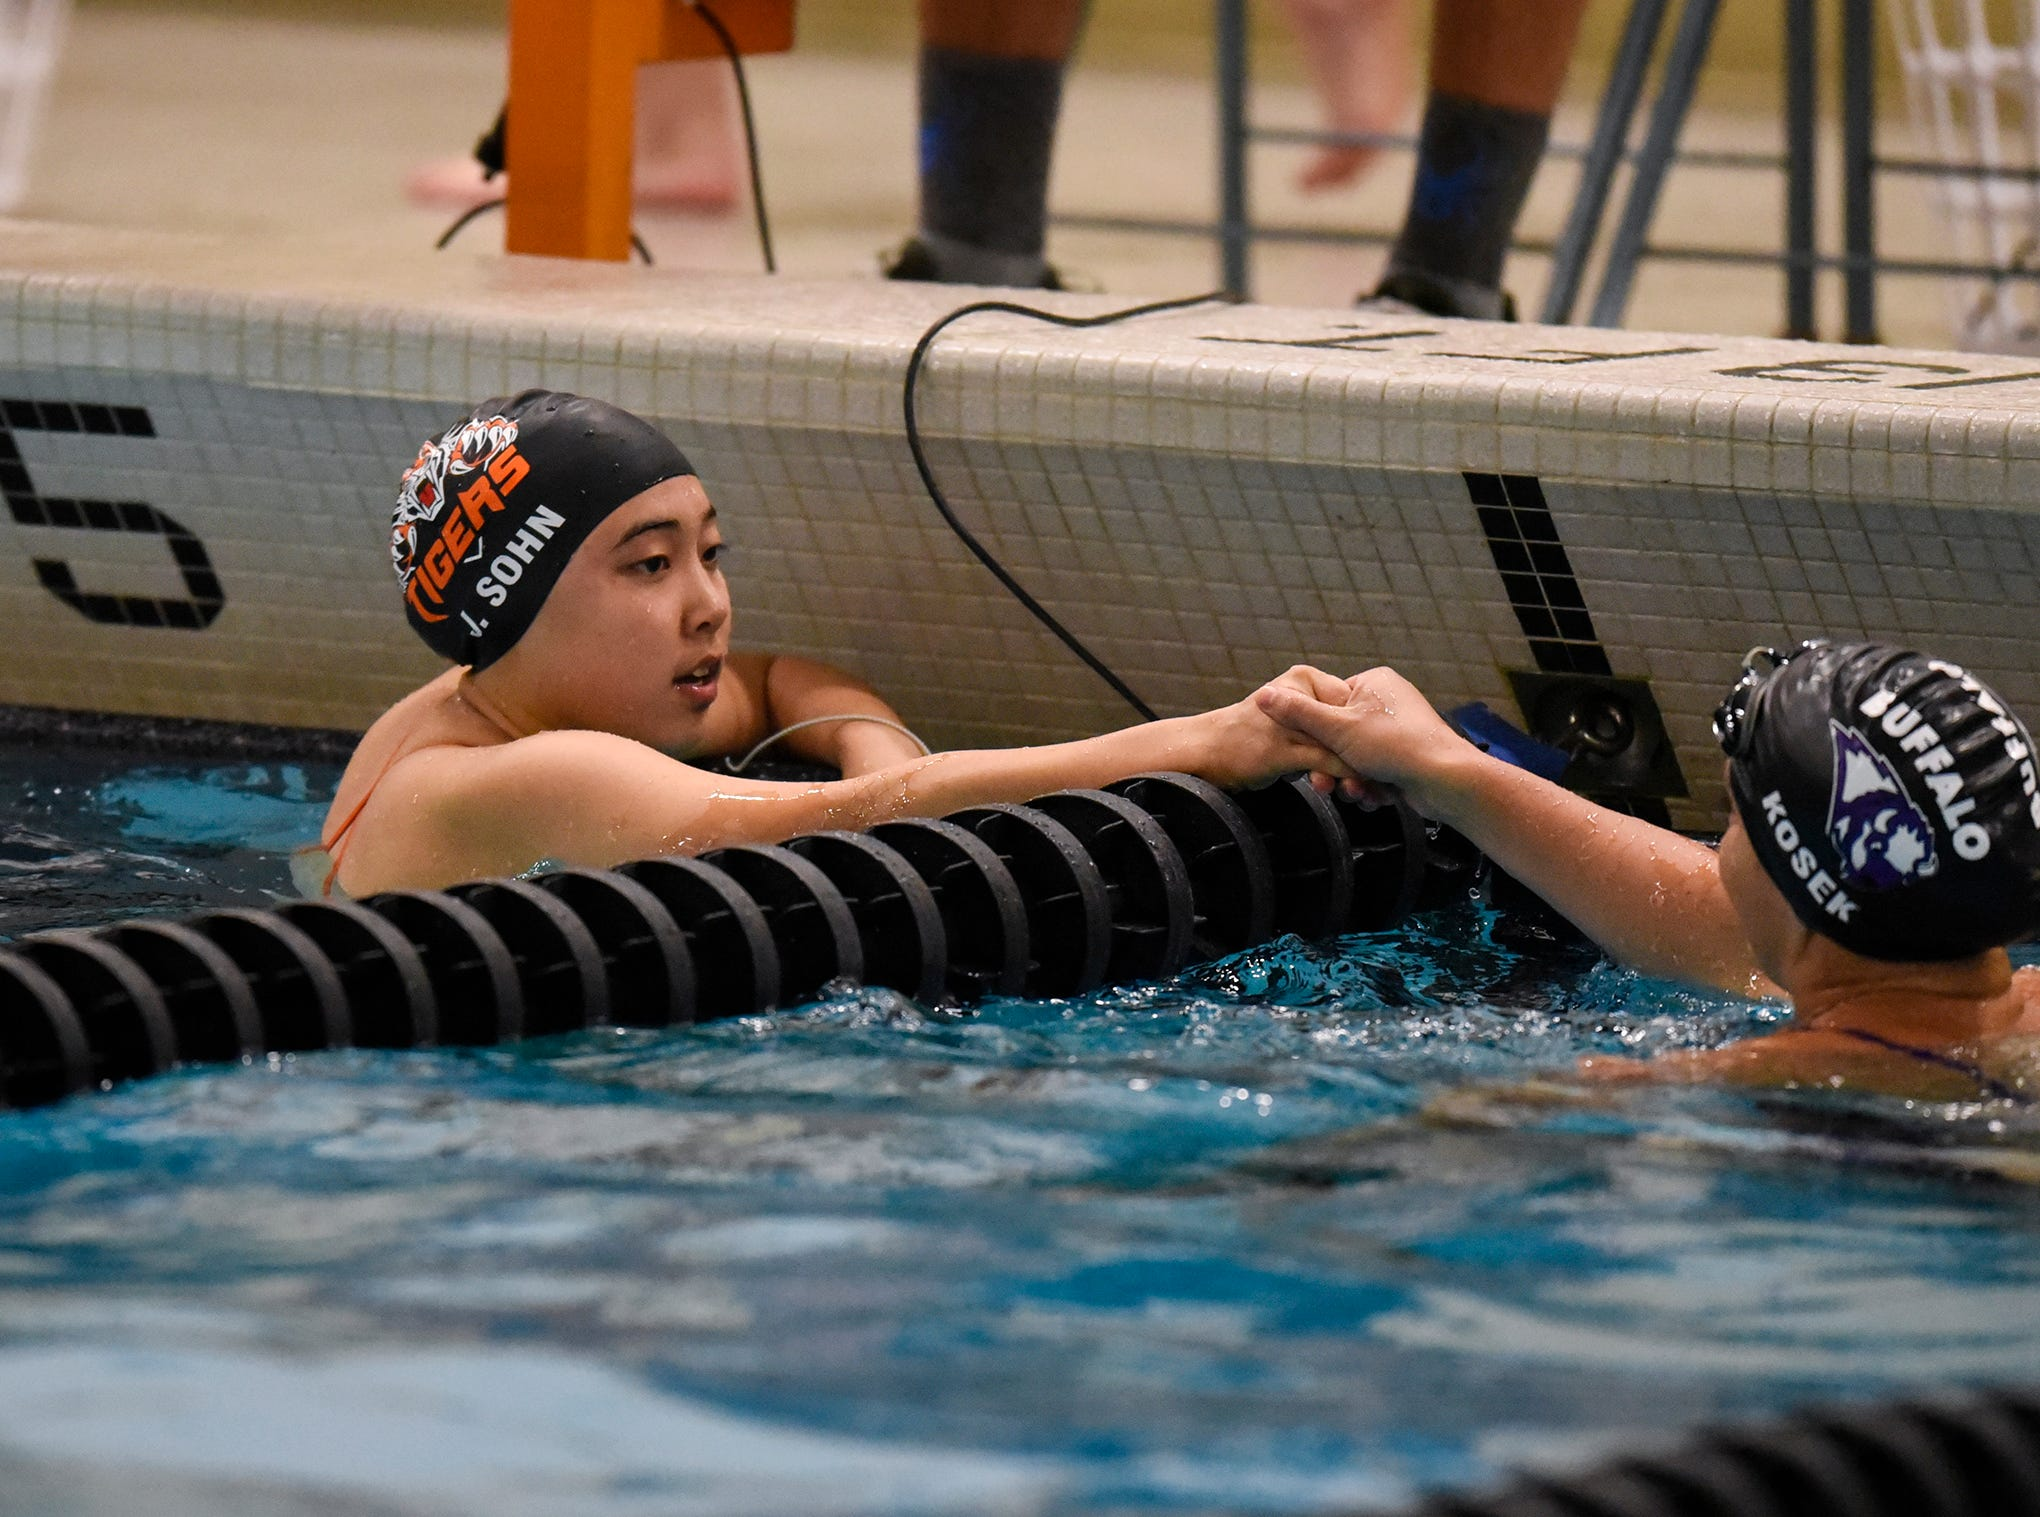 Jeeho Sohn shares a handshake with her opponent following her swim during the Tuesday, Sept. 18 meet against Buffalo at Tech High School in St. Cloud.